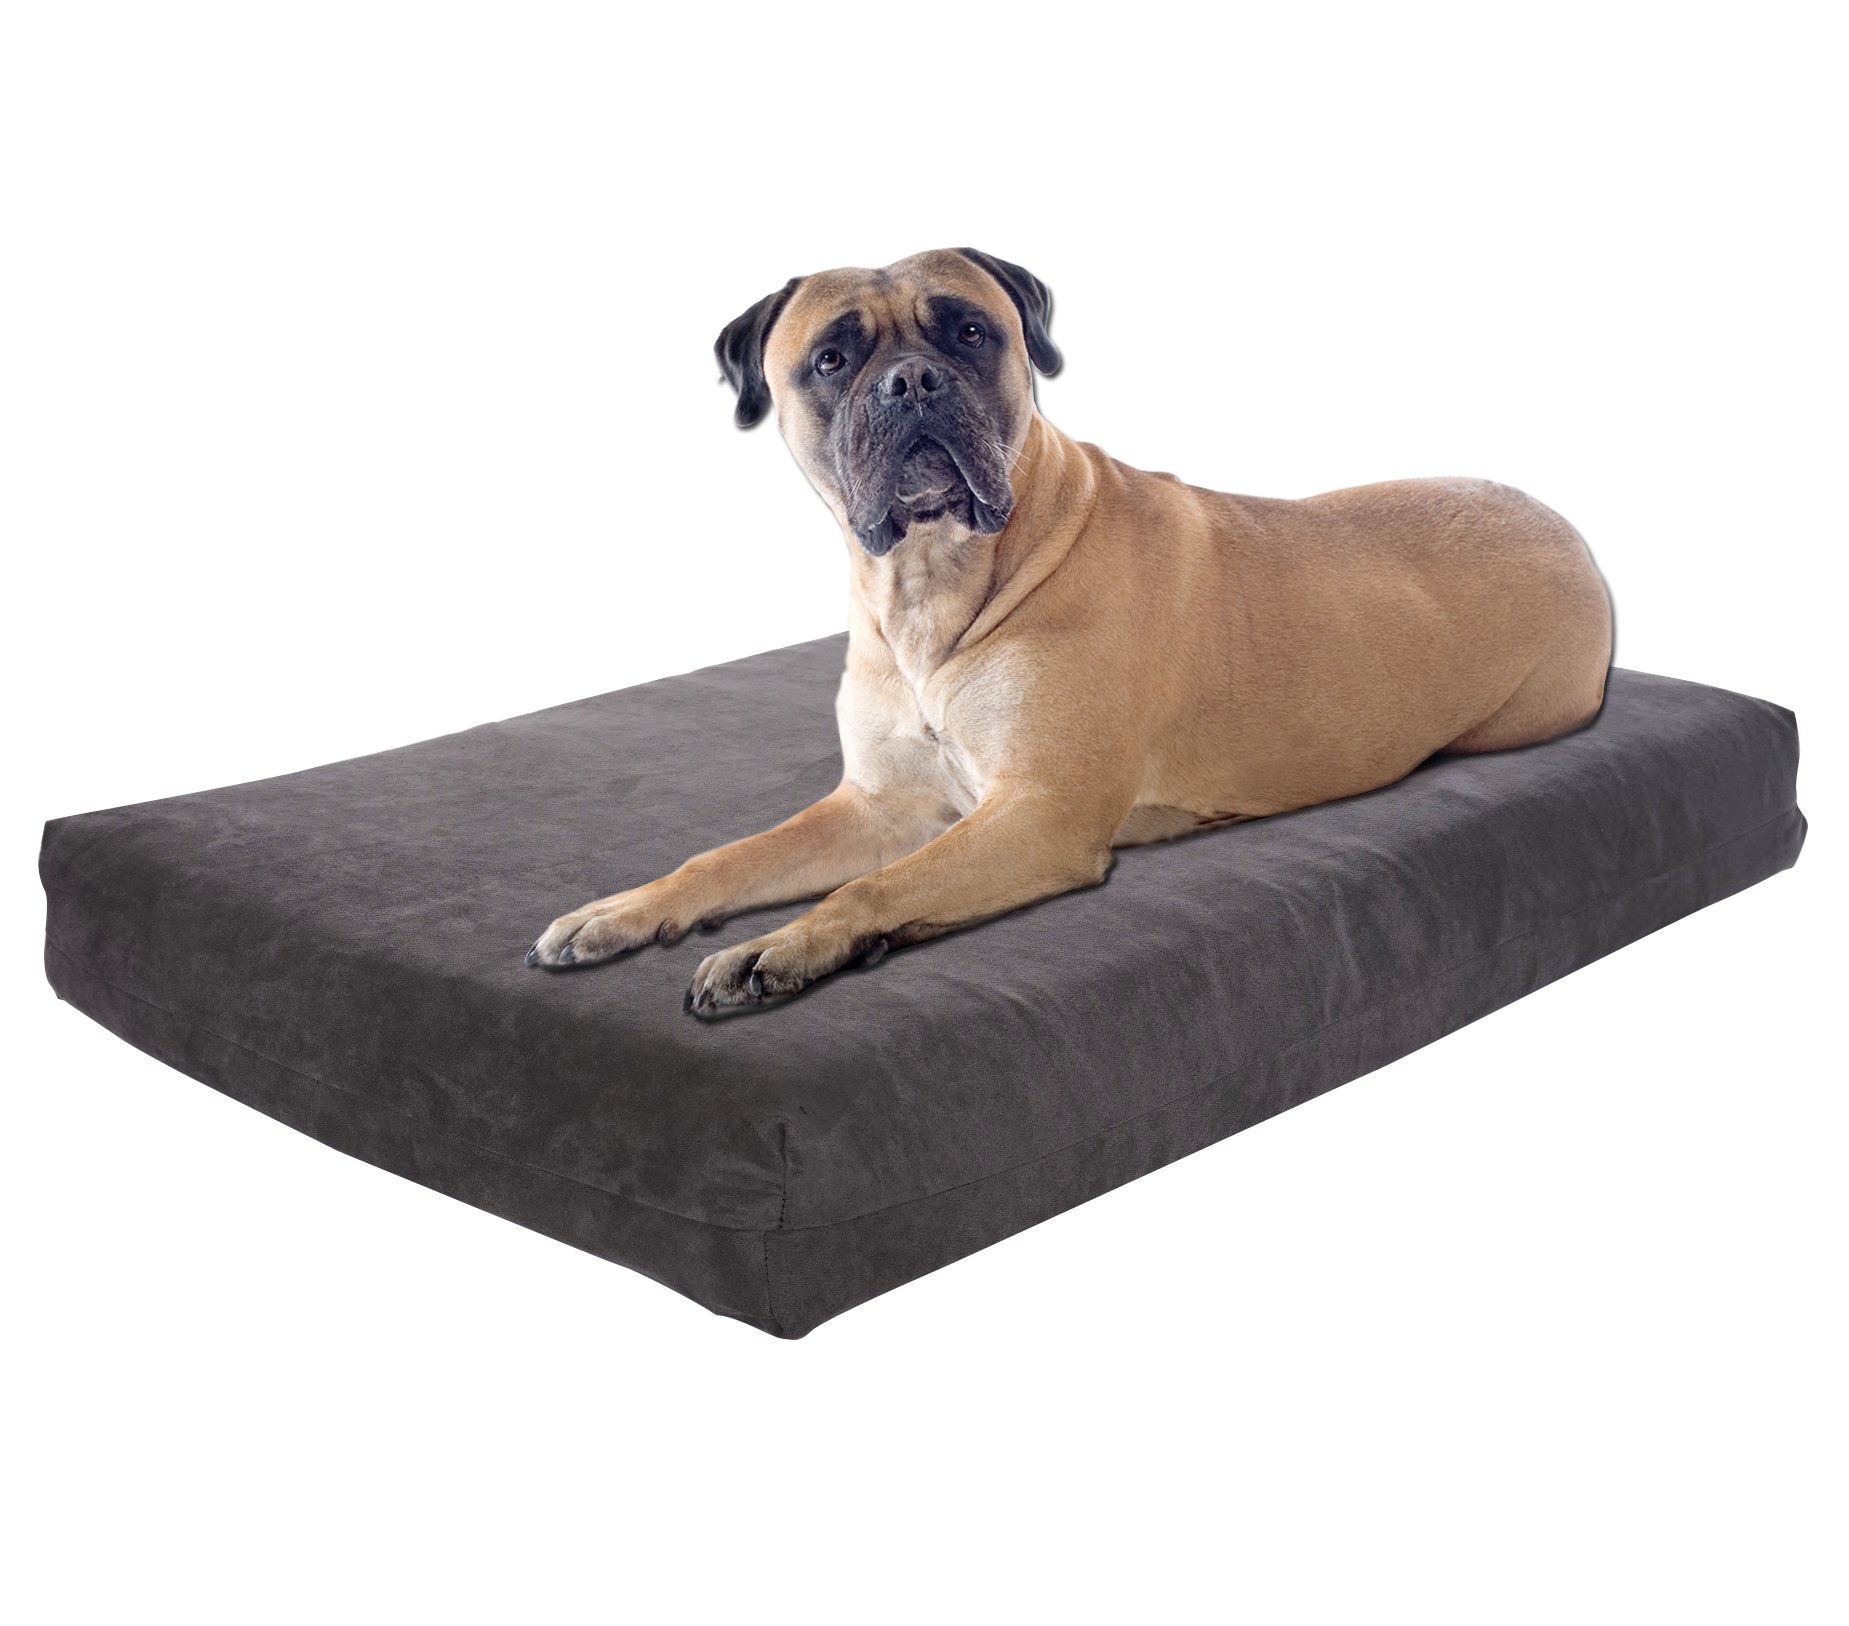 Pet Support Systems Orthopedic GEL Memory Foam Dog Bed, XX-Large (55-Inch x 37-Inch x 4.5-Inch), Grey Charcoal